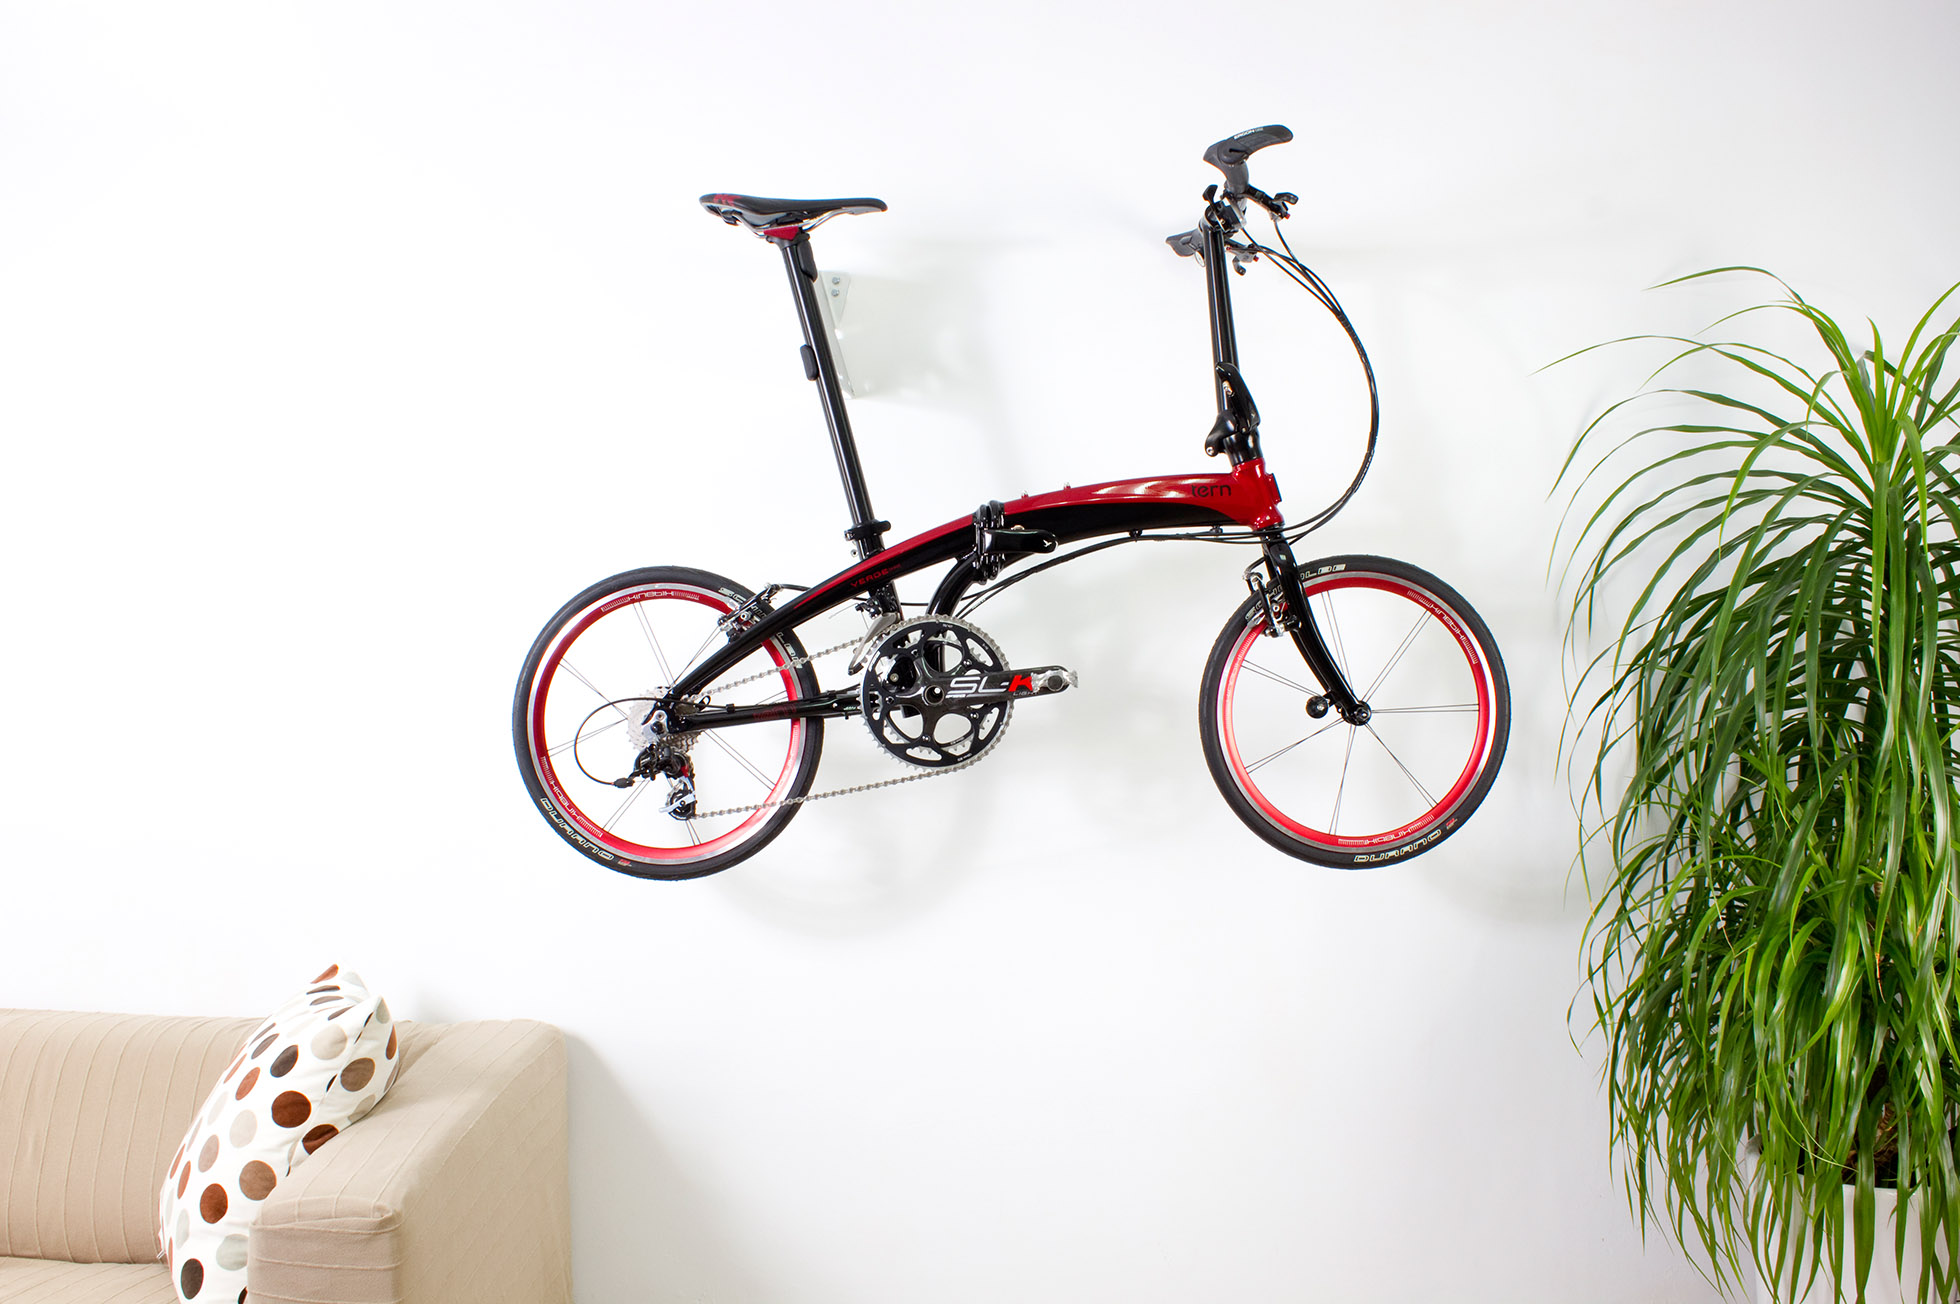 wall com compact image steady storeyourboard rack mount bike vertical